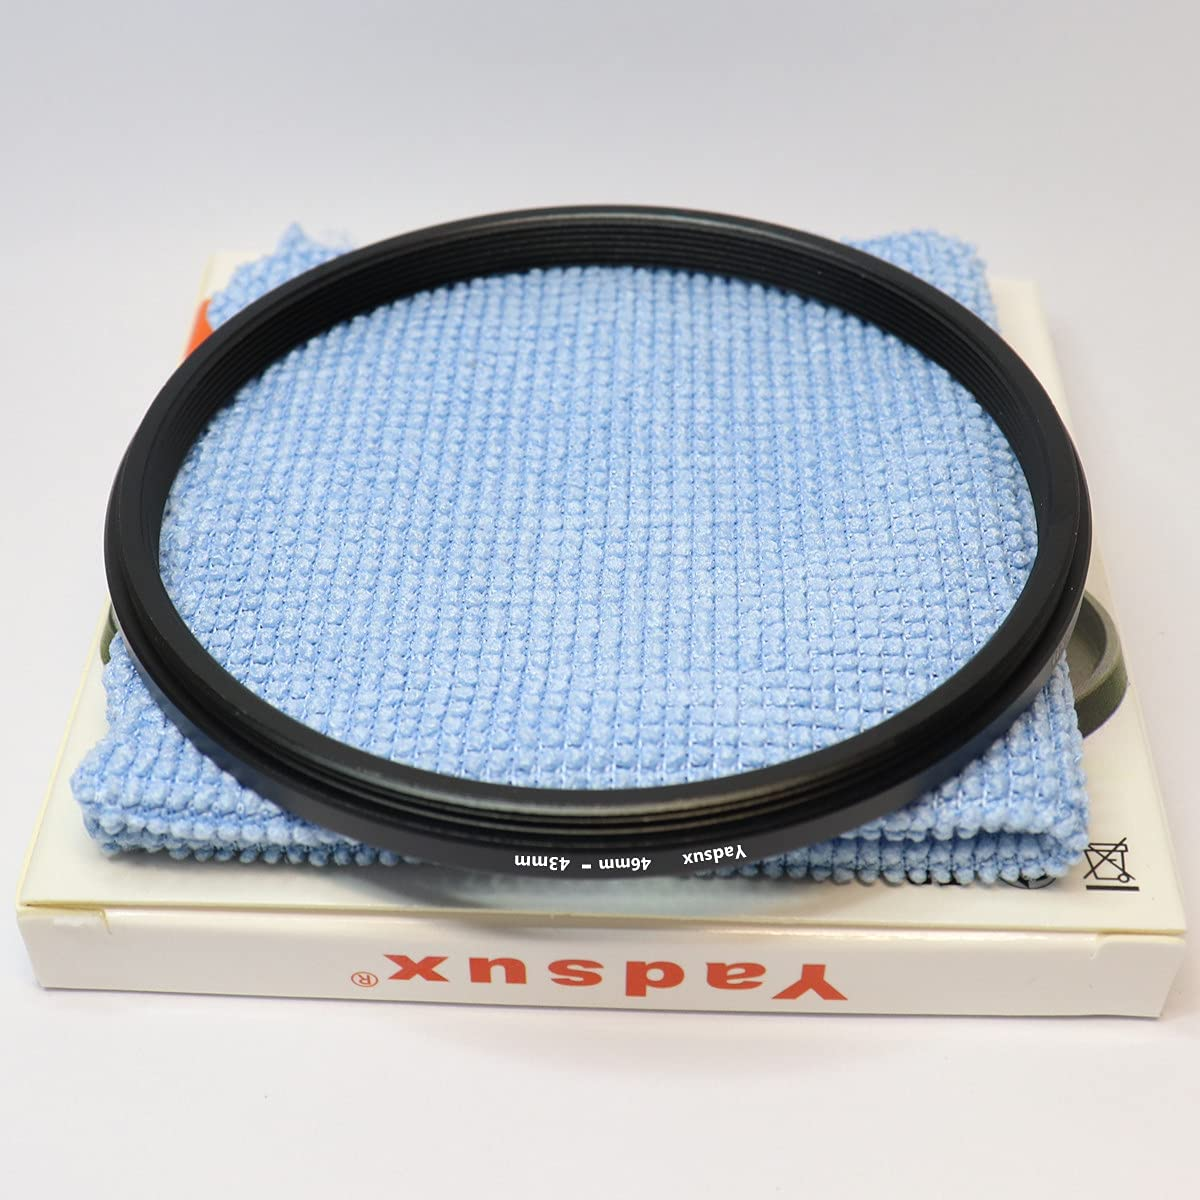 Fixed price for sale 46mm to Luxury goods 43mm Step Down Lens Filte for Ring Camera Adapter Lenses